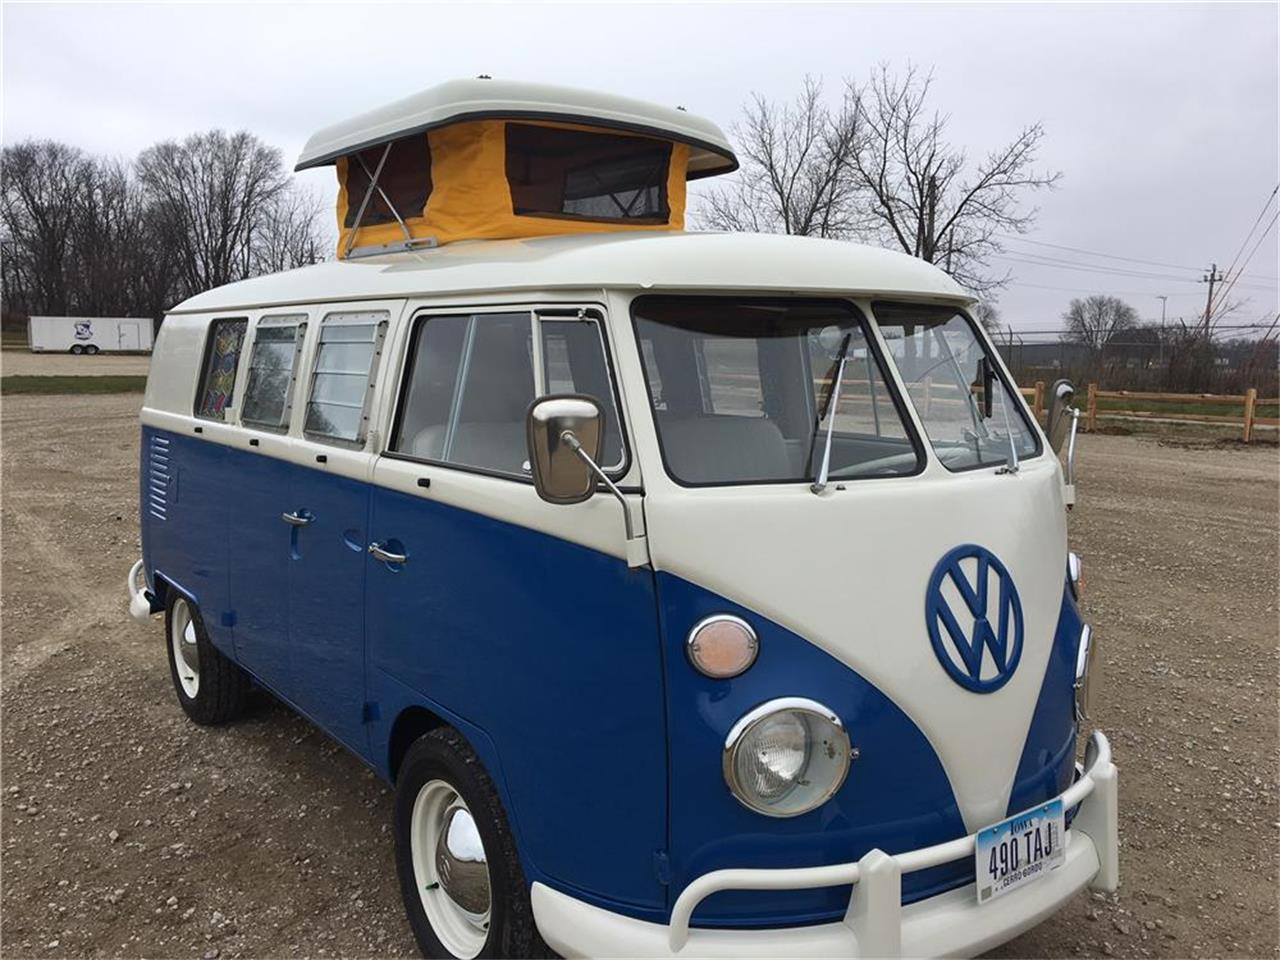 Large Picture of '65 Volkswagen Westfalia Camper located in Scottsdale Arizona Auction Vehicle Offered by Barrett-Jackson Auctions - MNMZ